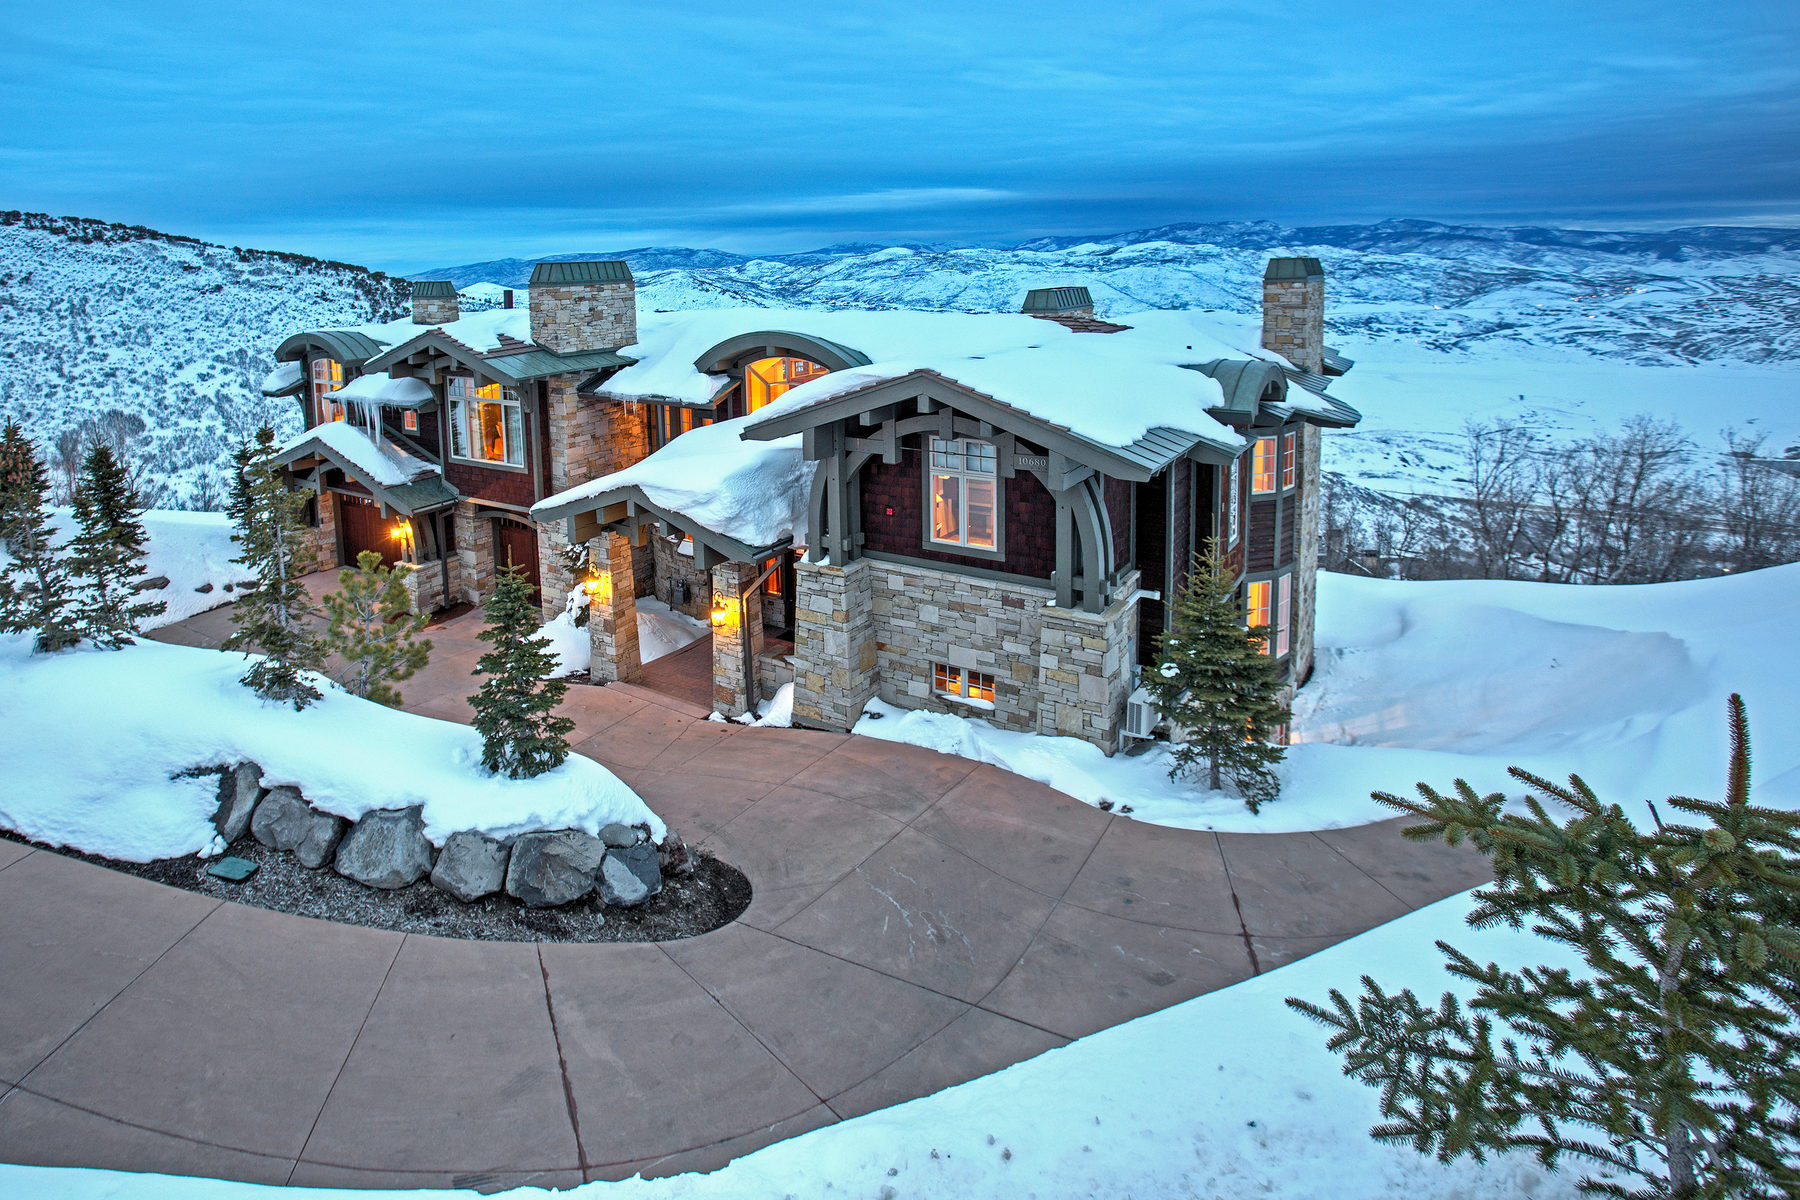 Maison unifamiliale pour l Vente à Direct ski in / ski out Deer Valley Mountain Residence 10680 N Summit View Park City, Utah, 84060 États-Unis